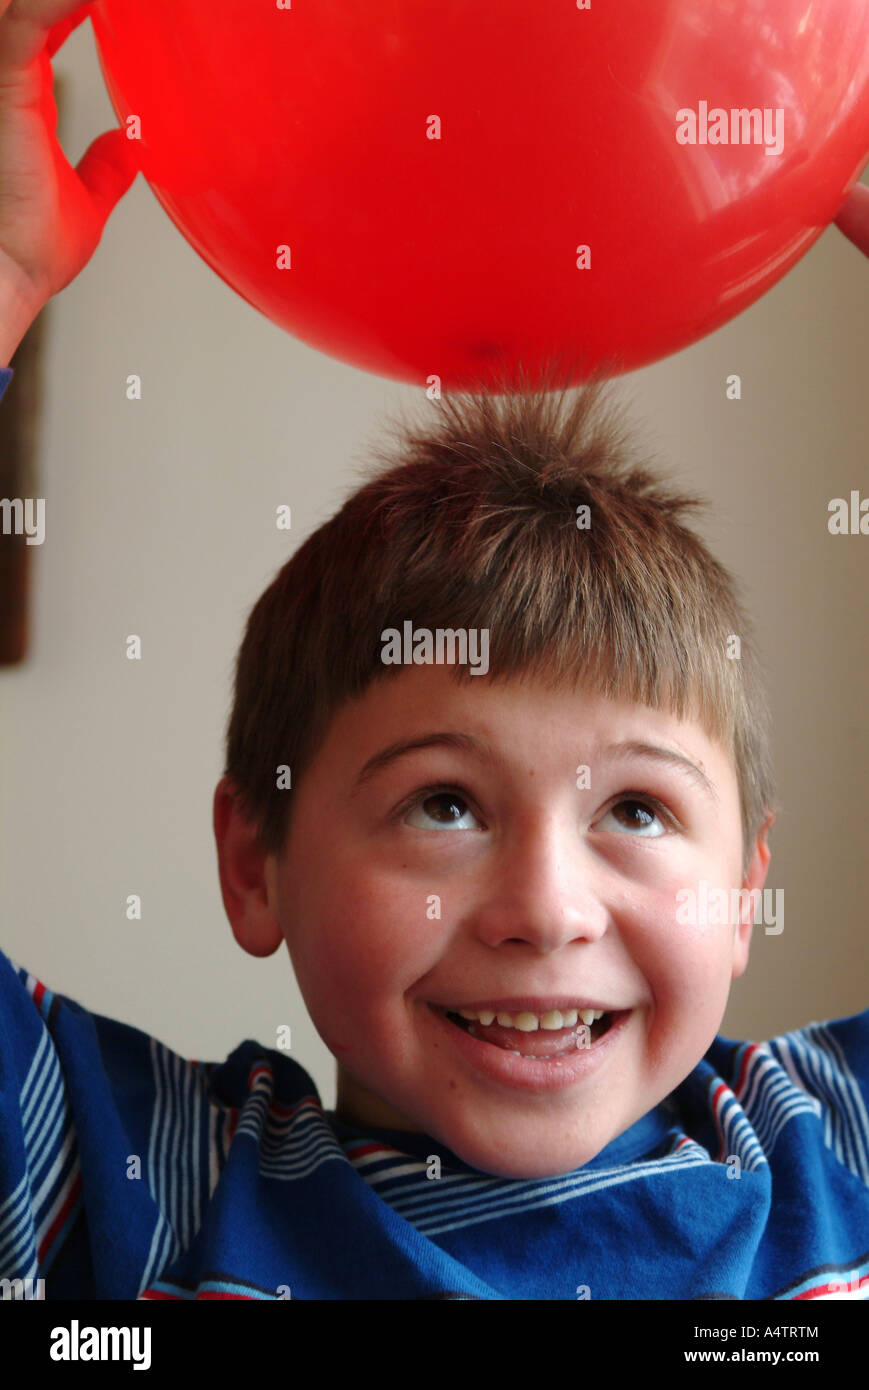 A 7 year old boy holds a red balloon over his head and static electricity pulls his hair towards the balloon Stock Photo